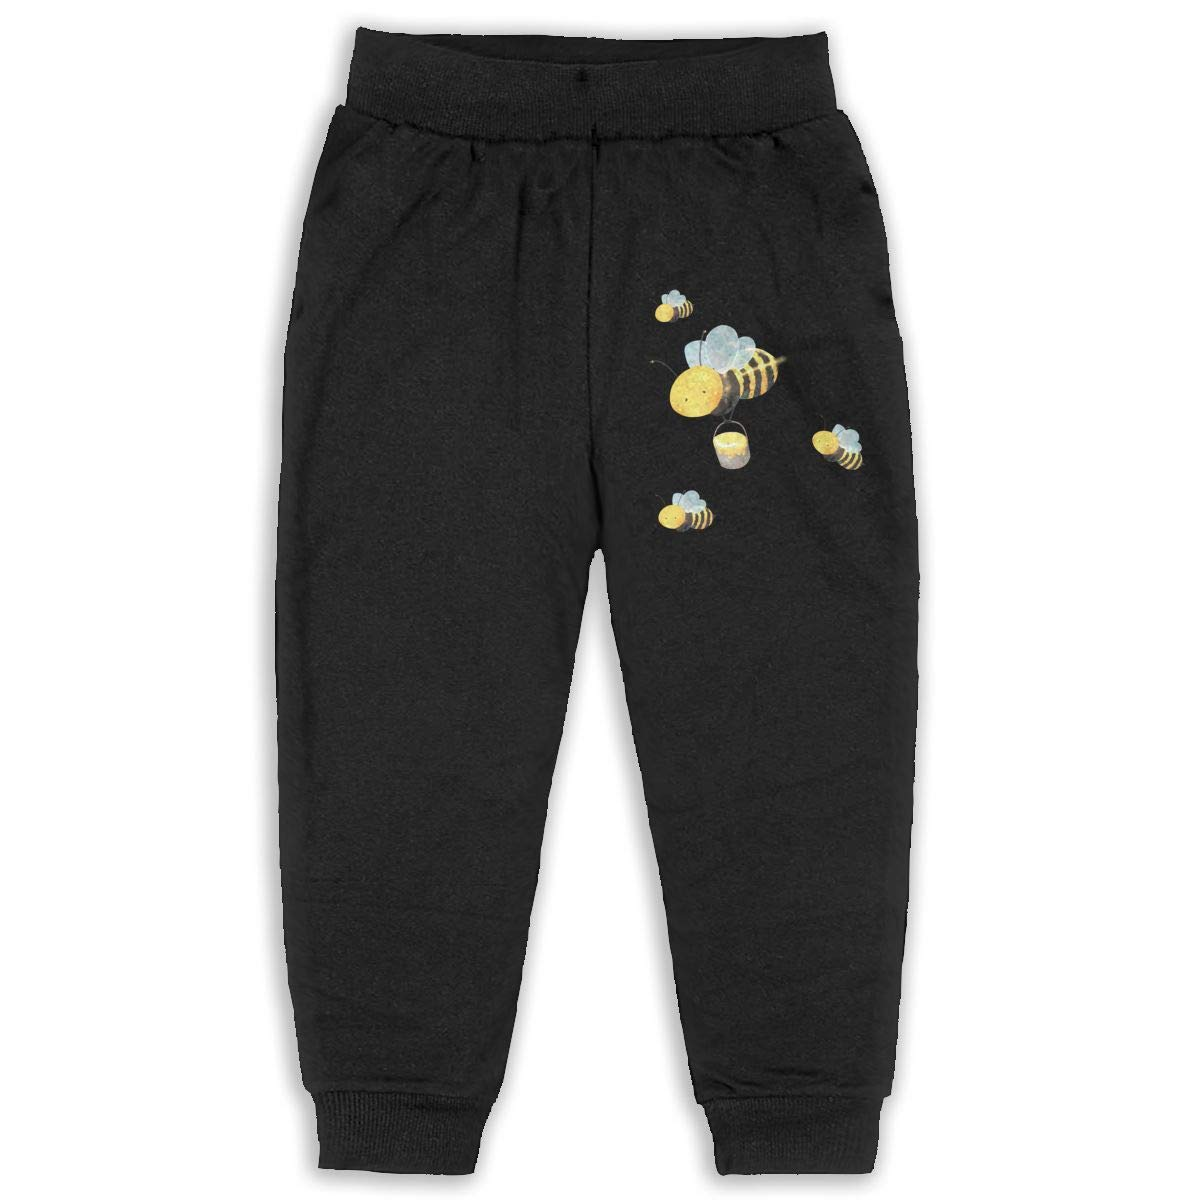 Uyikuvt Sweatpants Cute Bumblebee Pattern Cotton Toddler Active Jogger Full-Length Regular Size Pants Kids